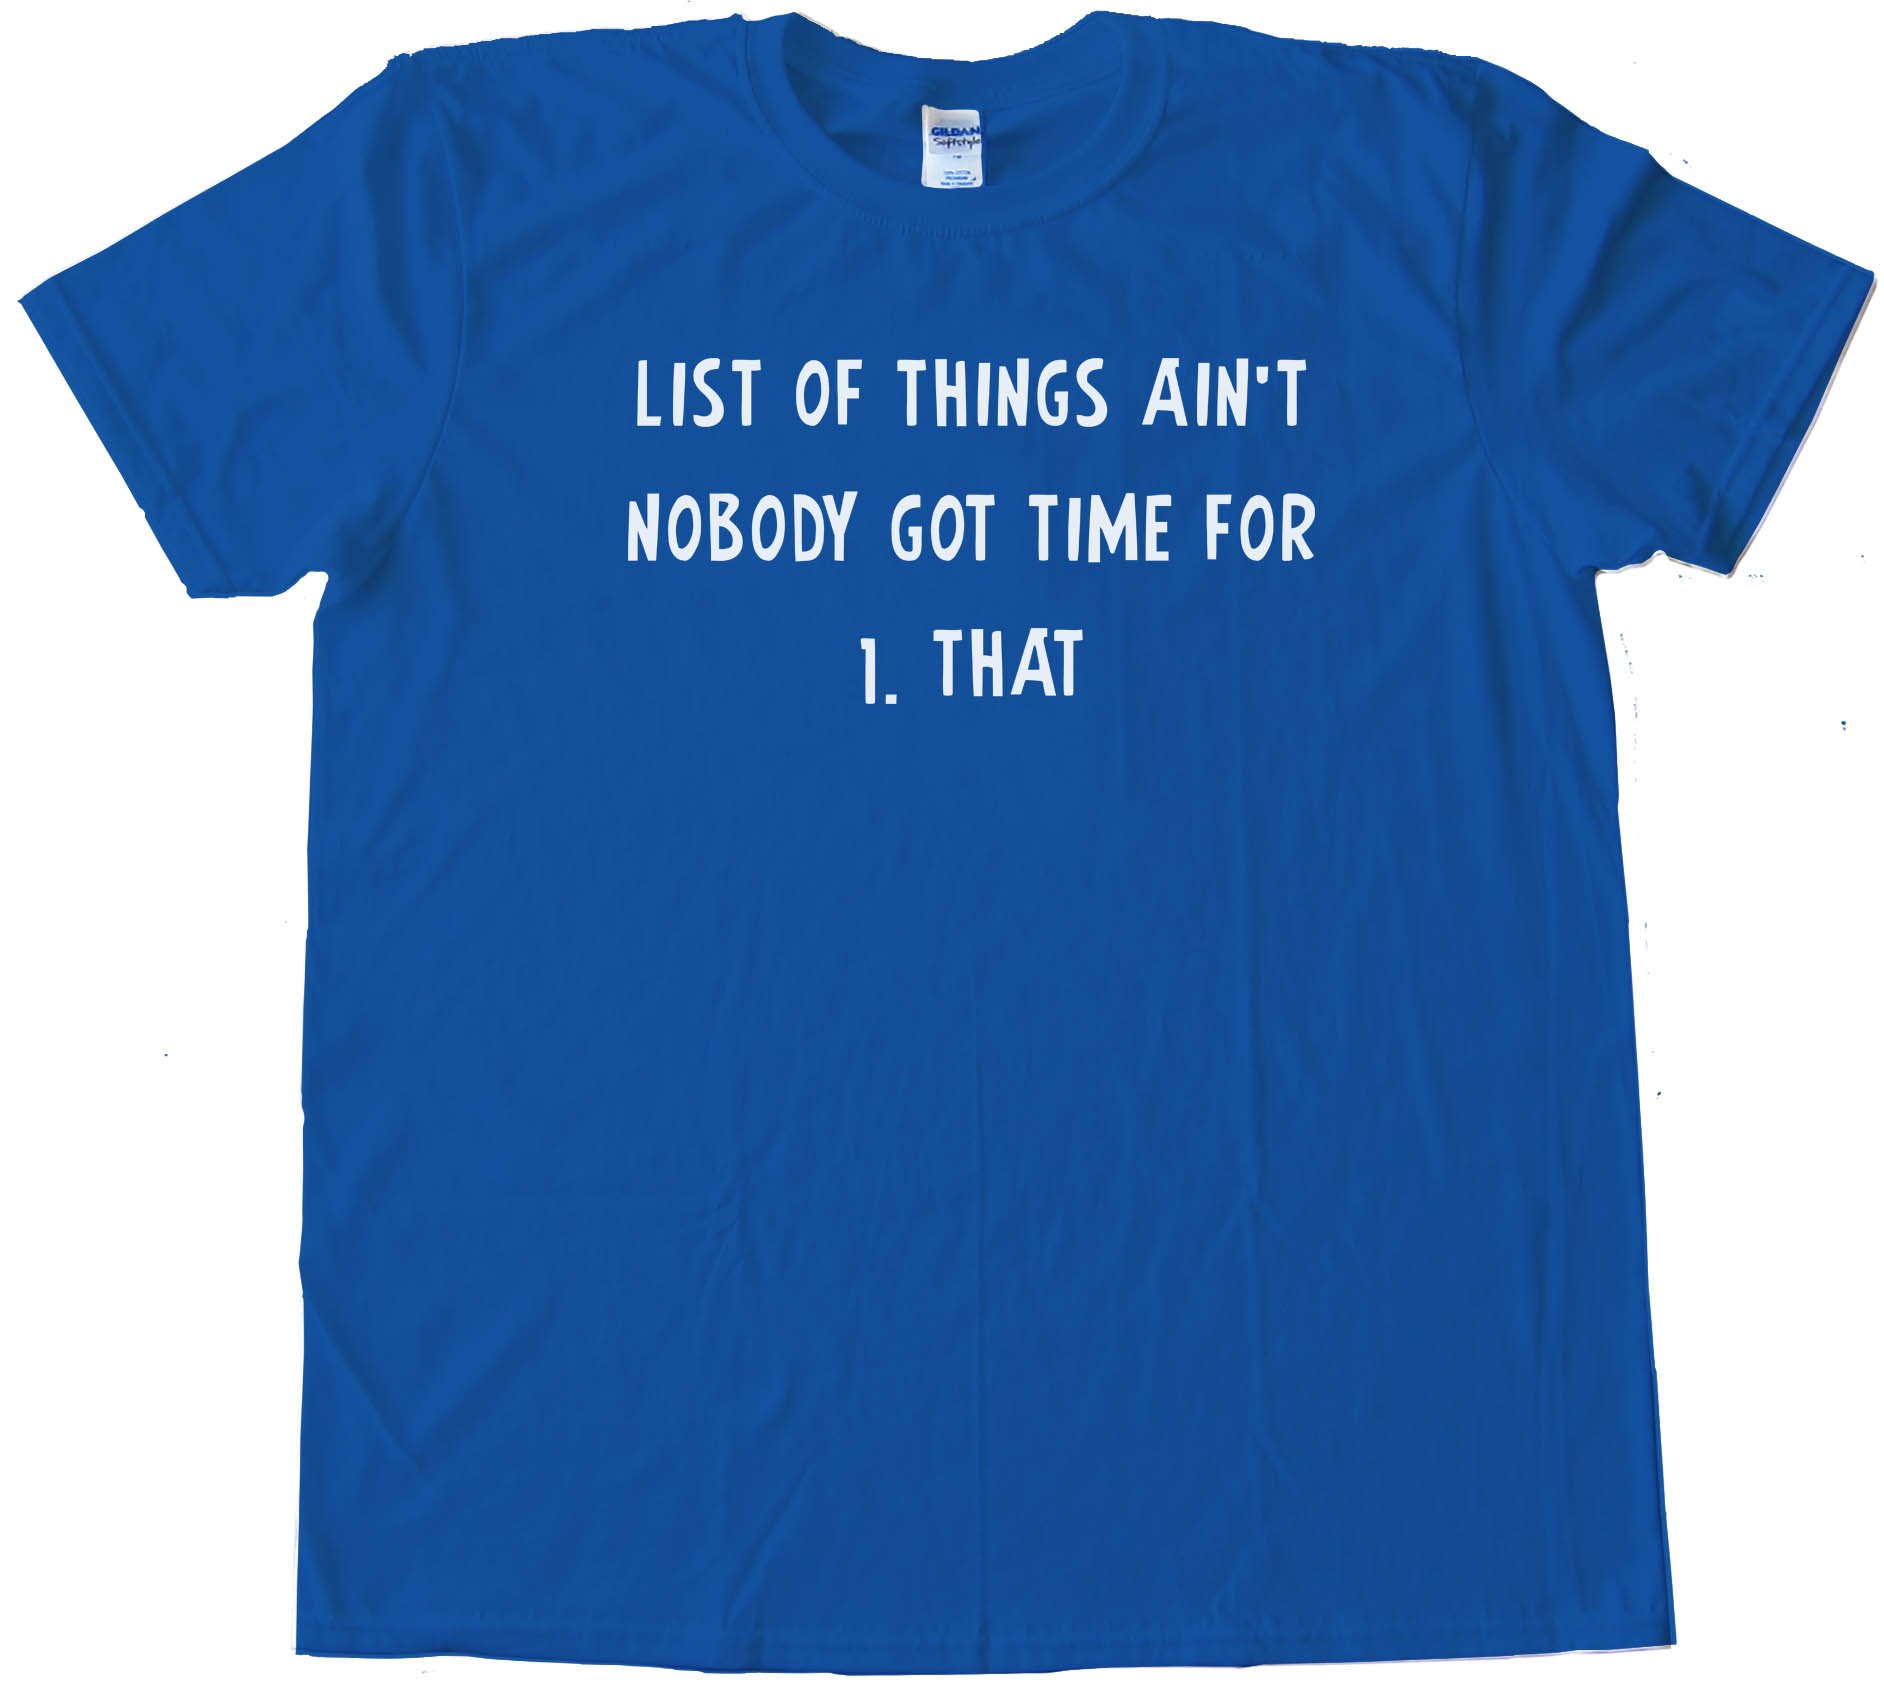 List Of Things Ain'T Nobody Got Time For 1. That Tee Shirt